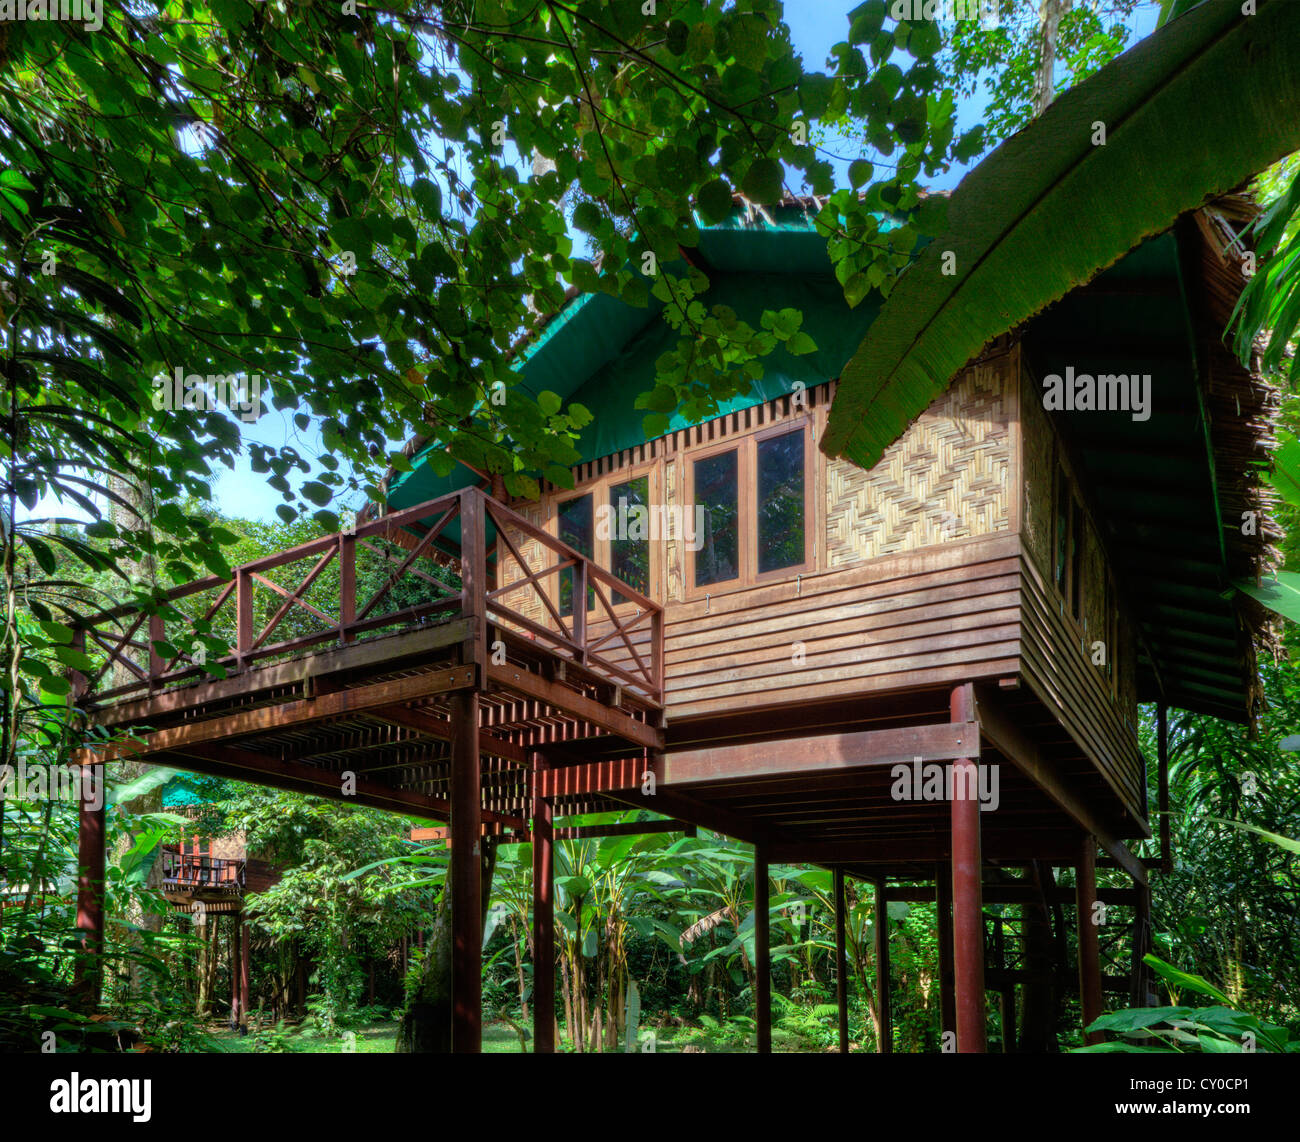 Uncategorized Houses In The Jungle tree houses are the specialty of our jungle house khao sok national park surathani provence thailand